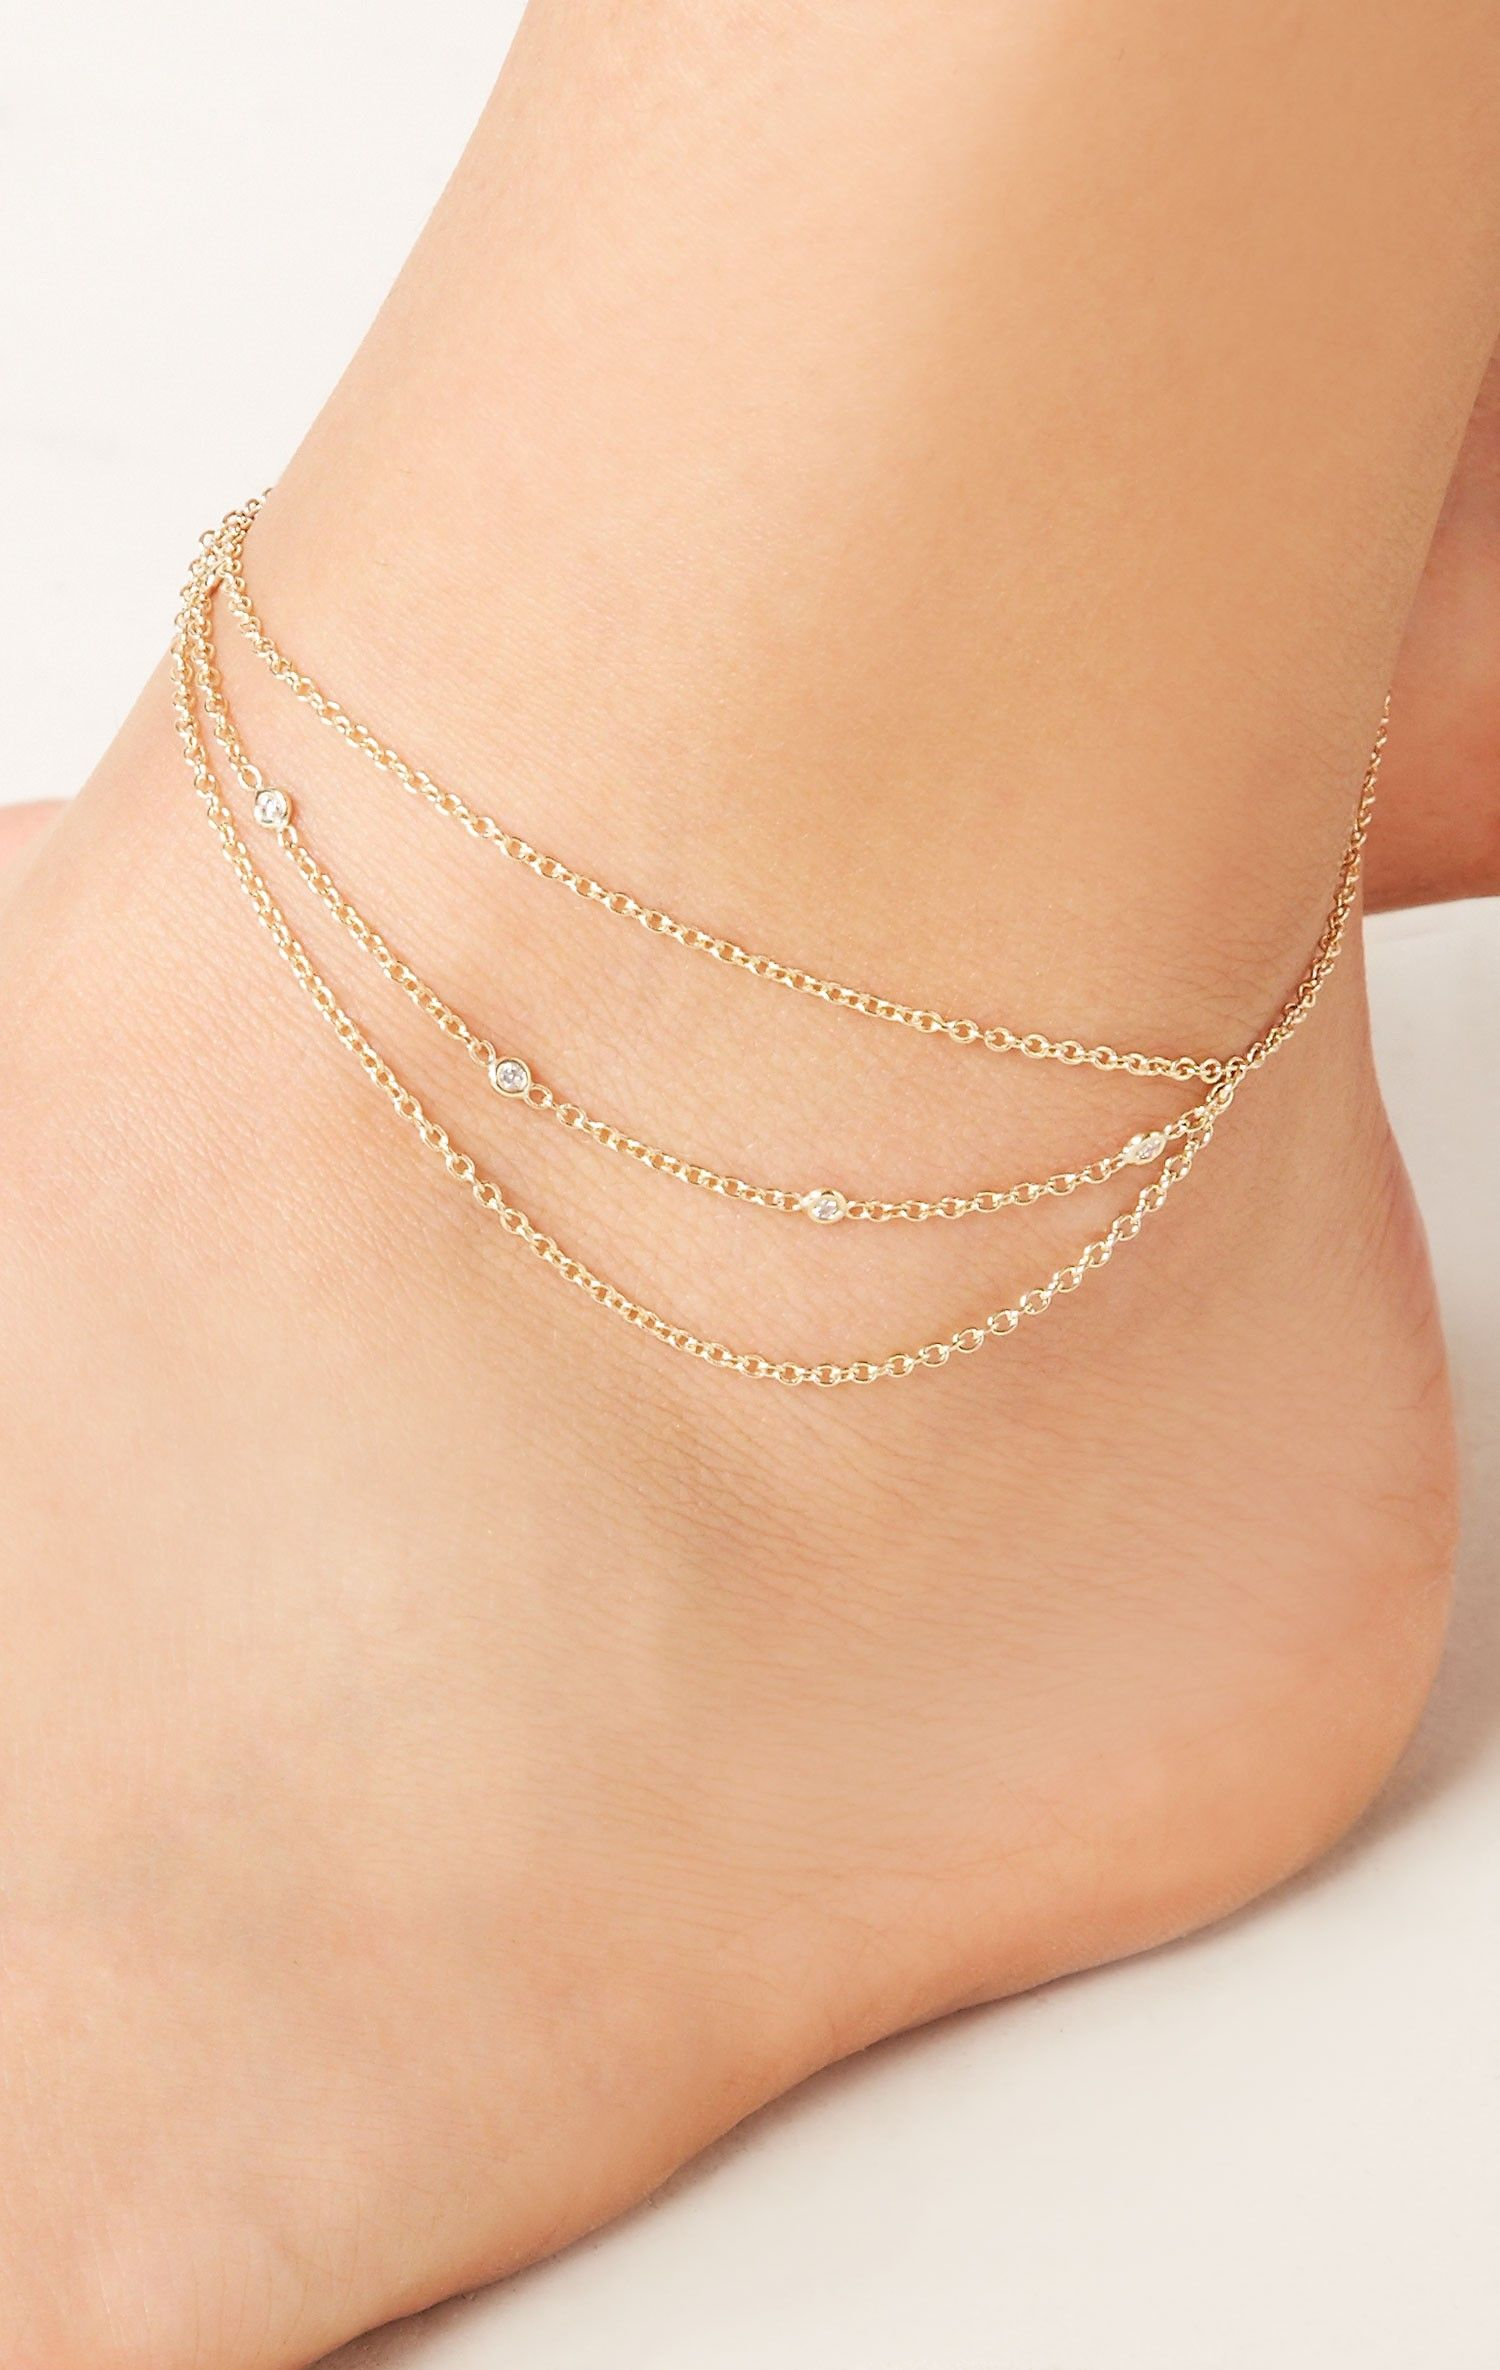 buy silver jewellery fine amazon for diva anklets women dp store low india anklet alloy prices in at jewelry online charms